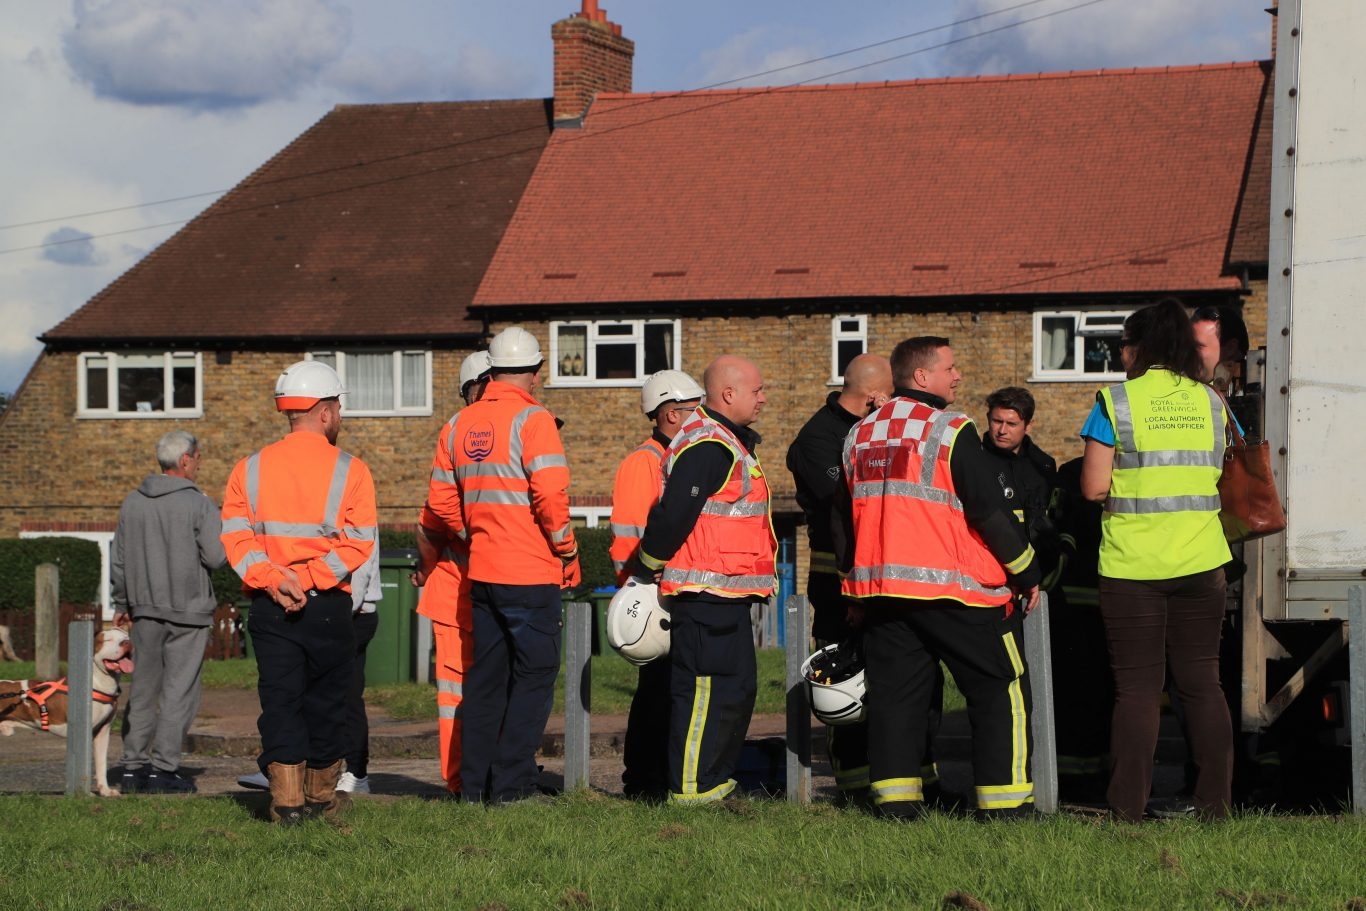 Emergency services personnel and staff from Thames Water and the local authority of Greenwich at Alwold Crescent in Lee, south London, where residents were rushed to hospital with nausea and vomiting amid fears of a chemical incident (Gareth Fuller/PA)